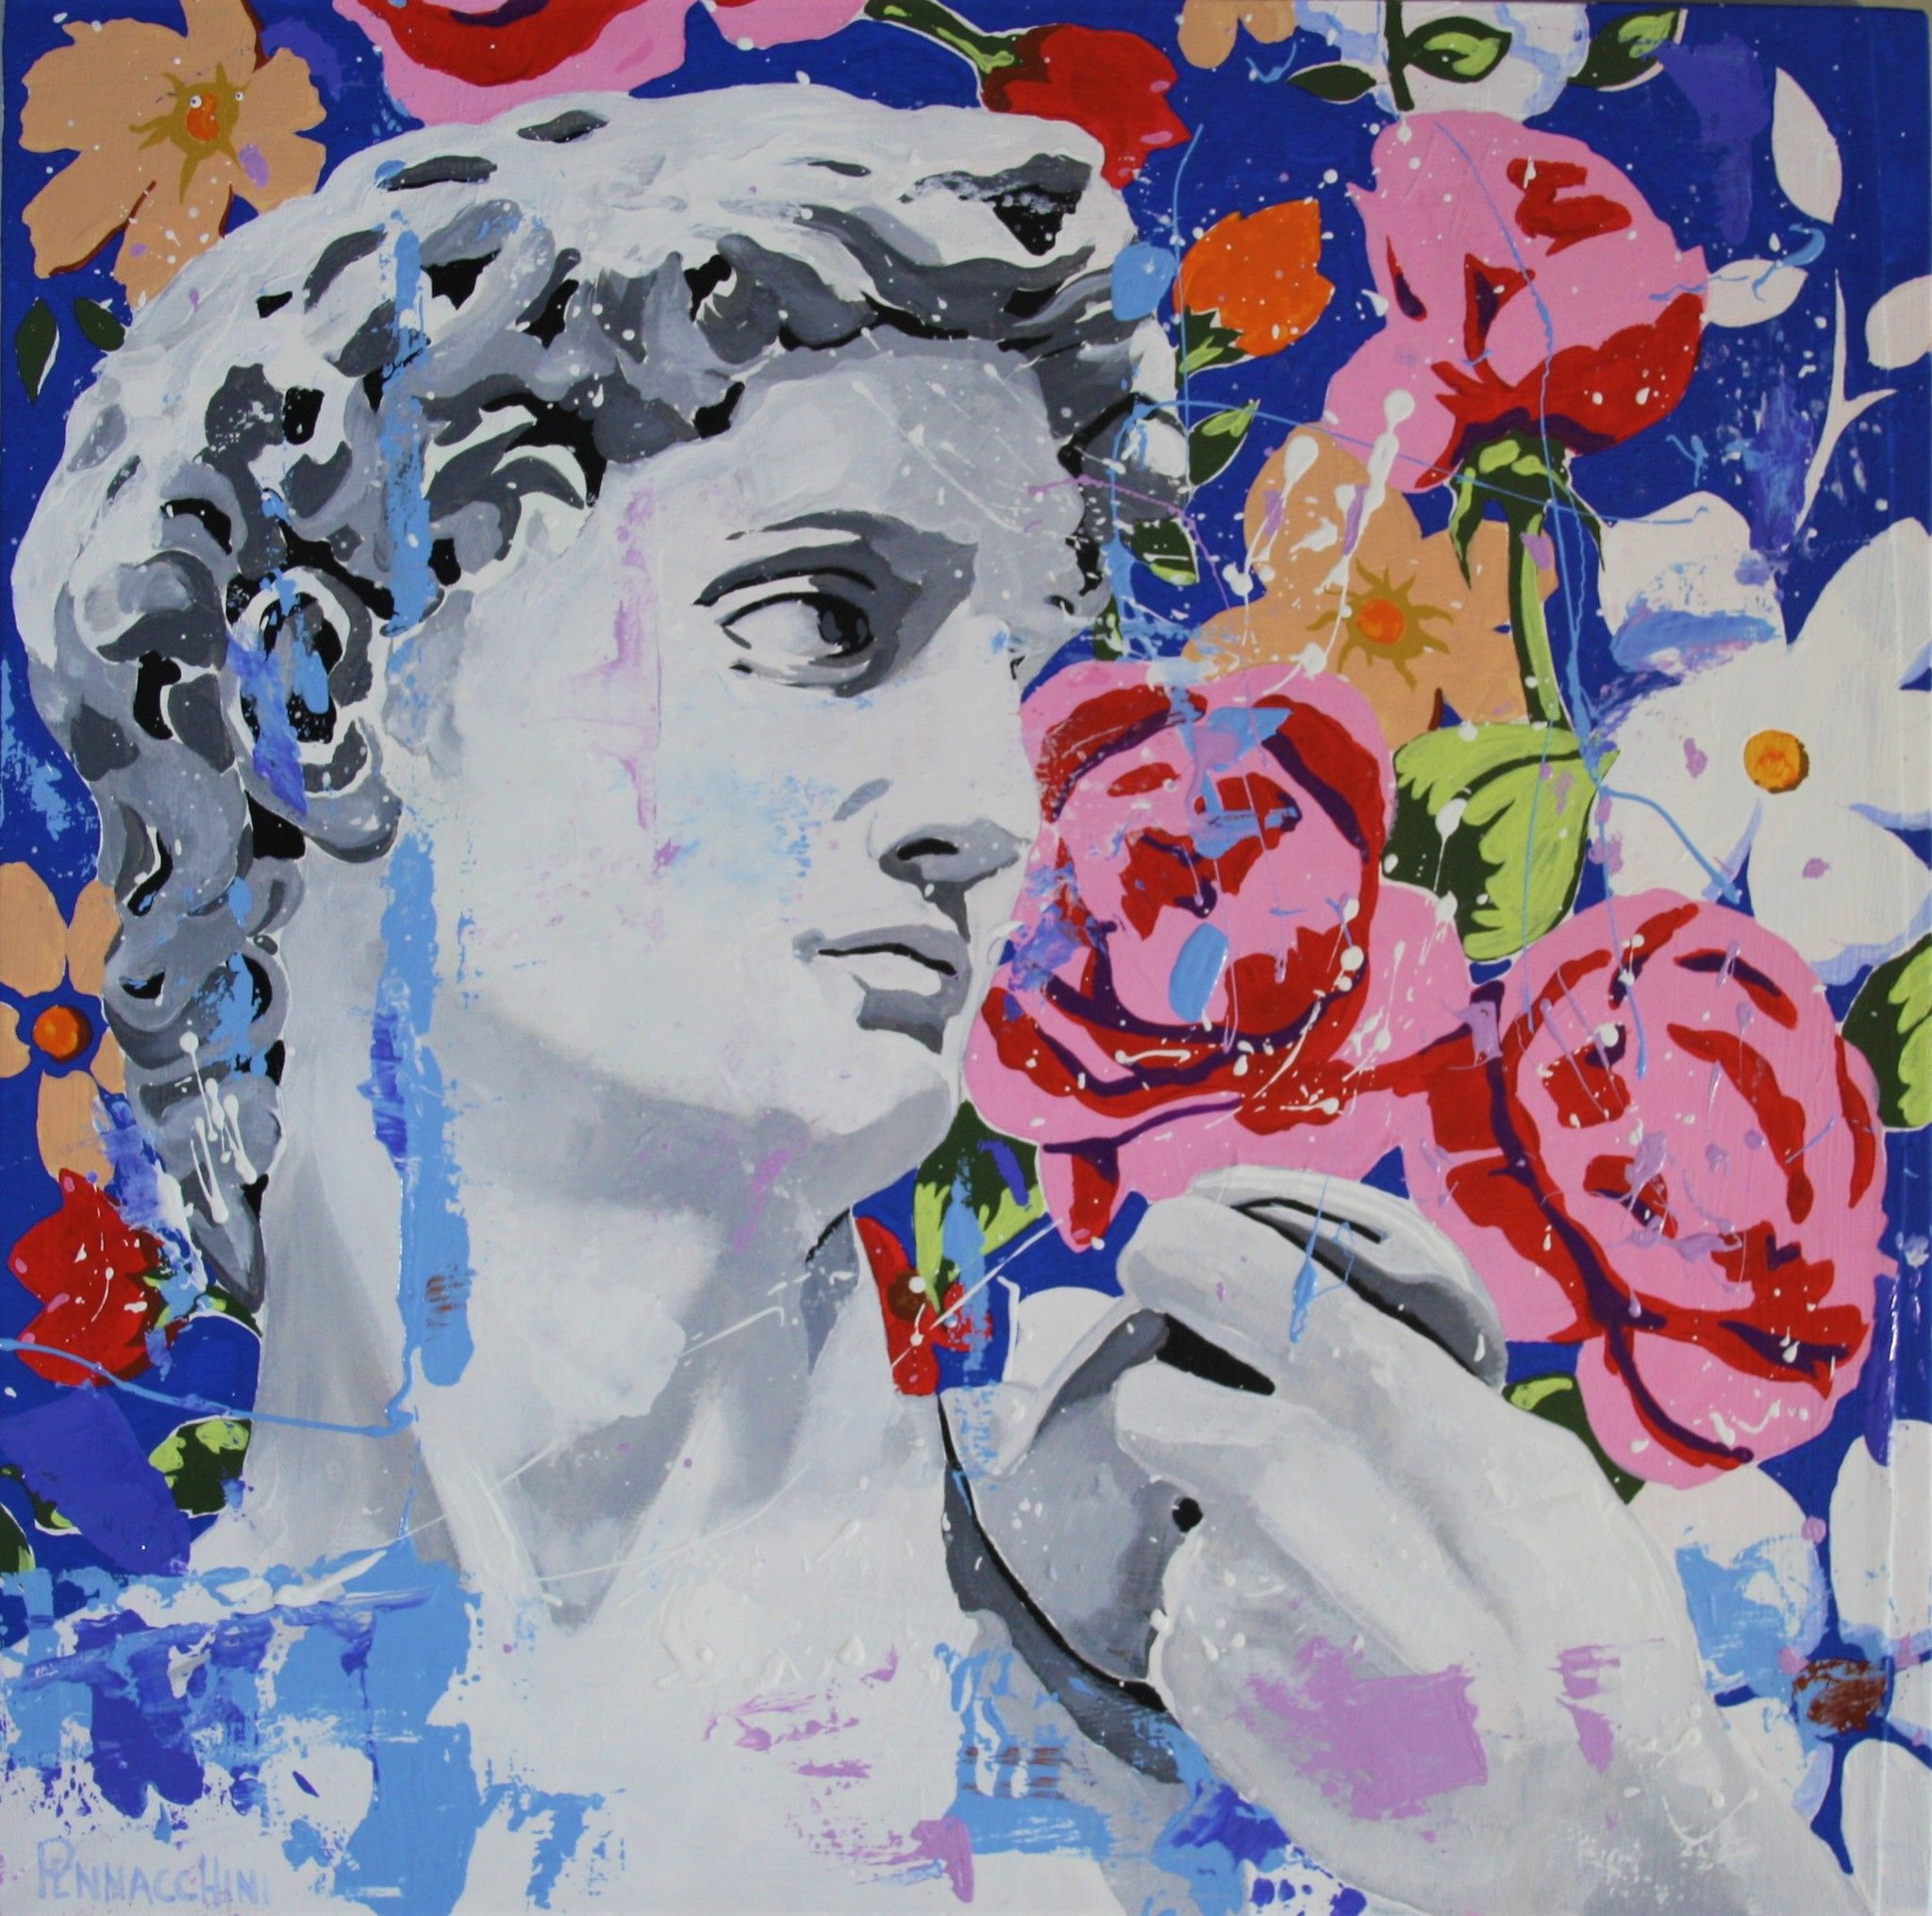 "MIXED MEDIA MASSIMO PENNACCHINI "" DAVID 1 ""  dimensioni L 50 x H 50 cm."